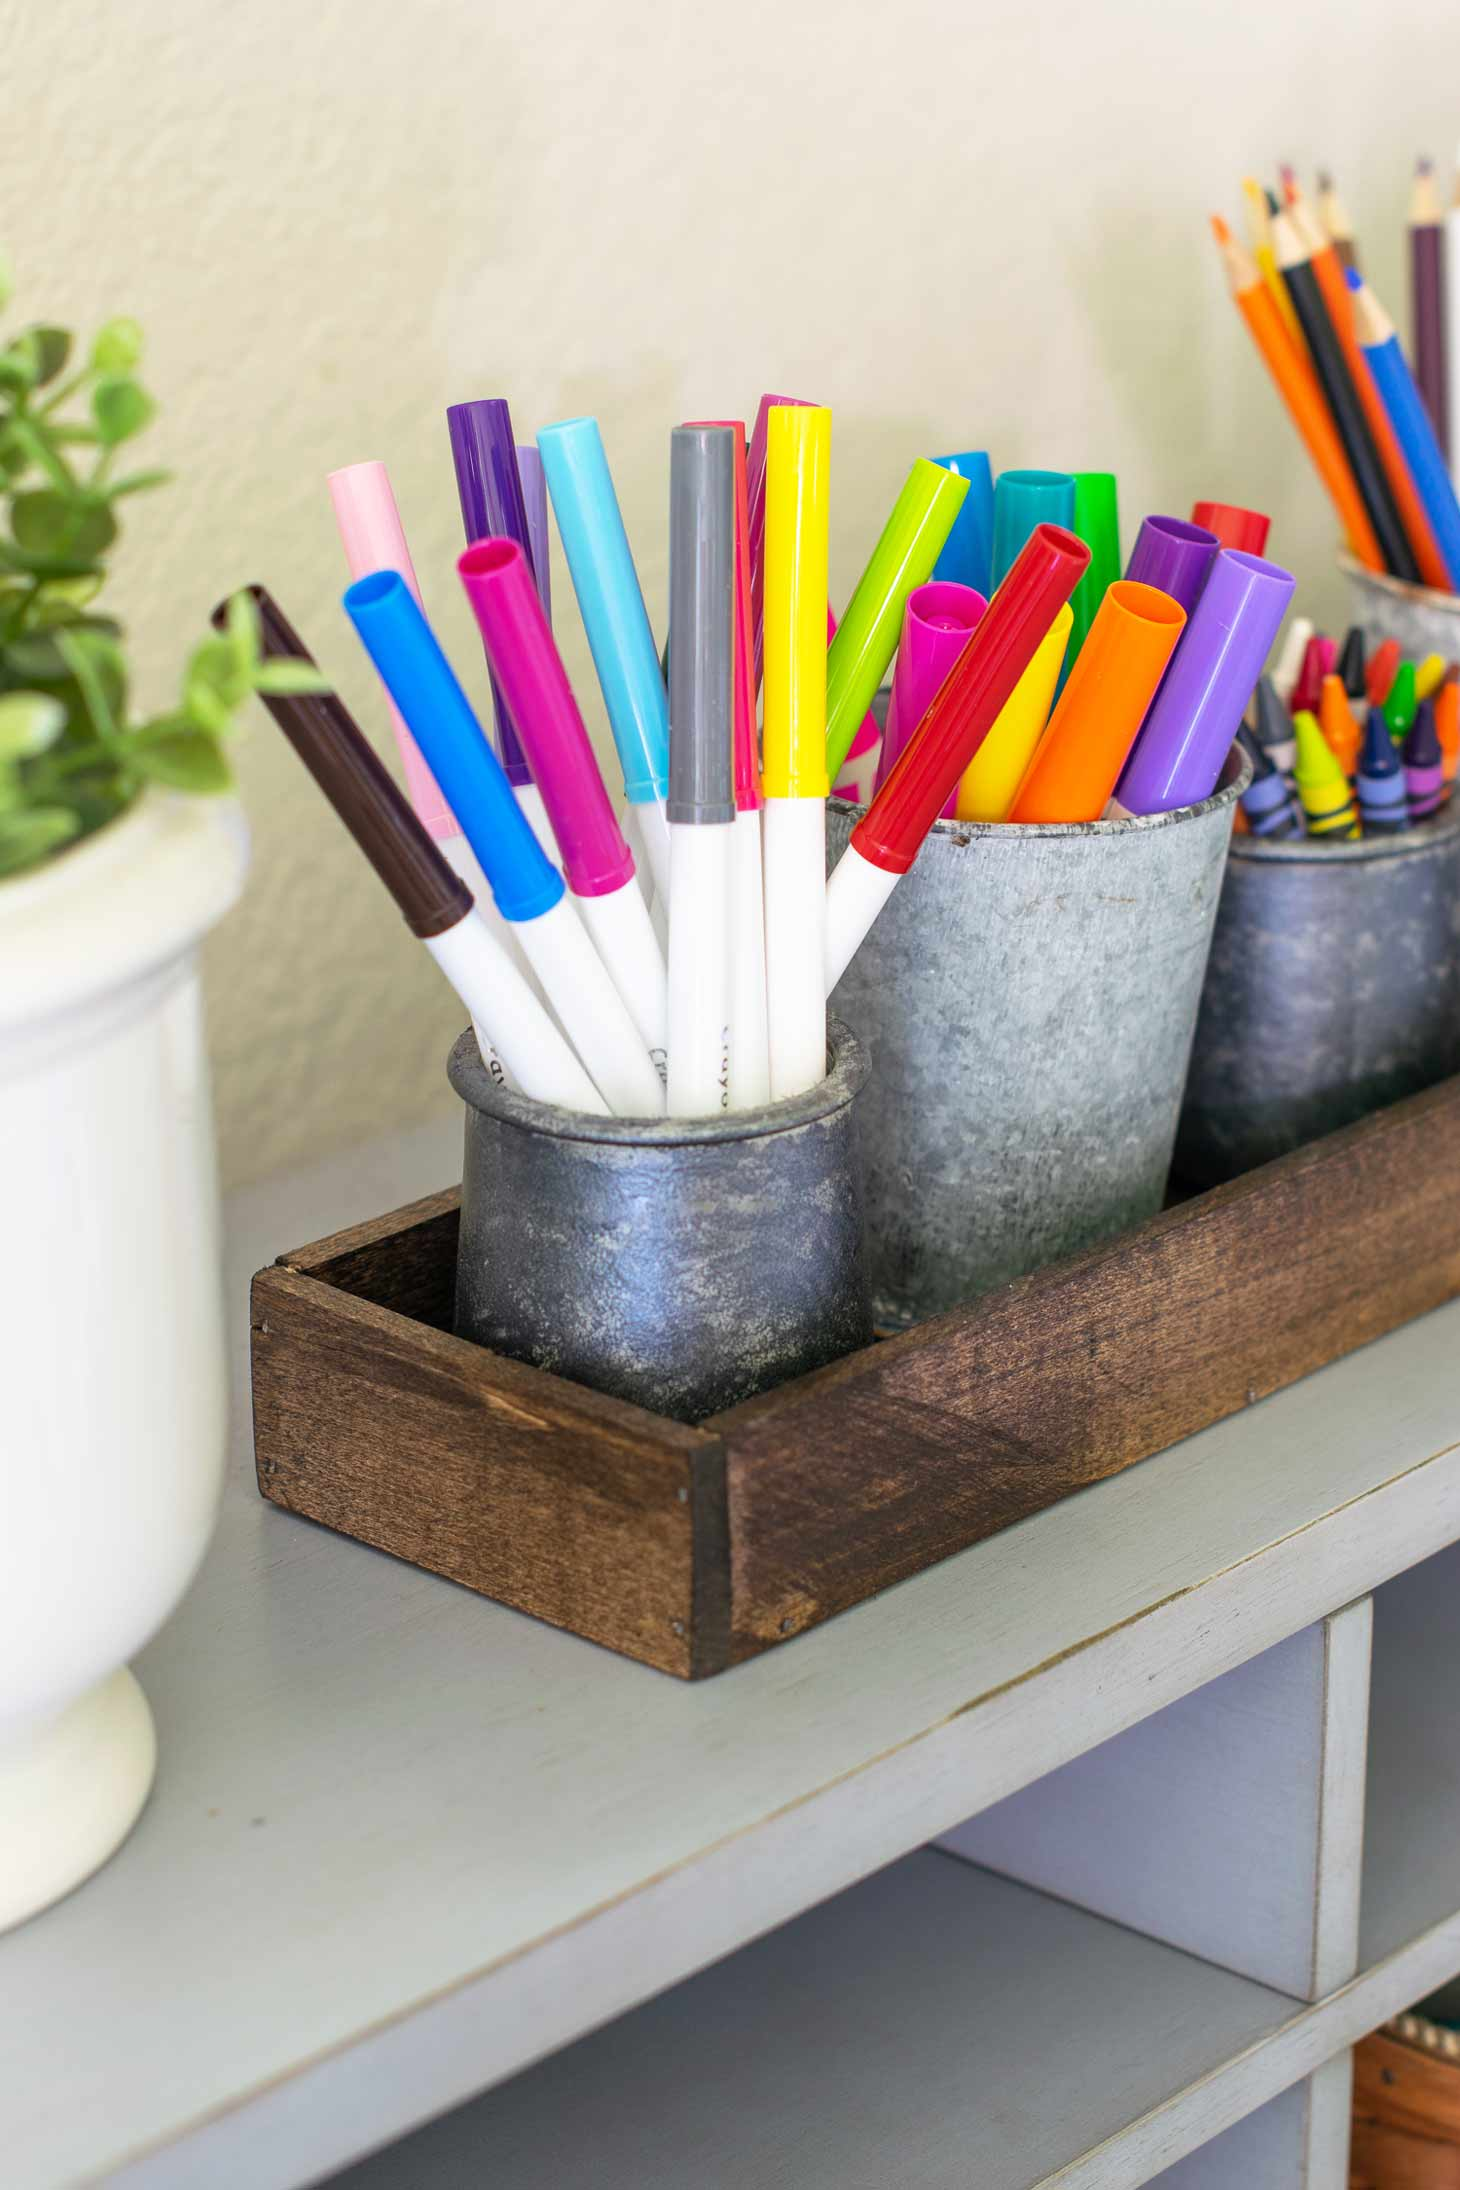 make back to school organization easy with this DIY organizer